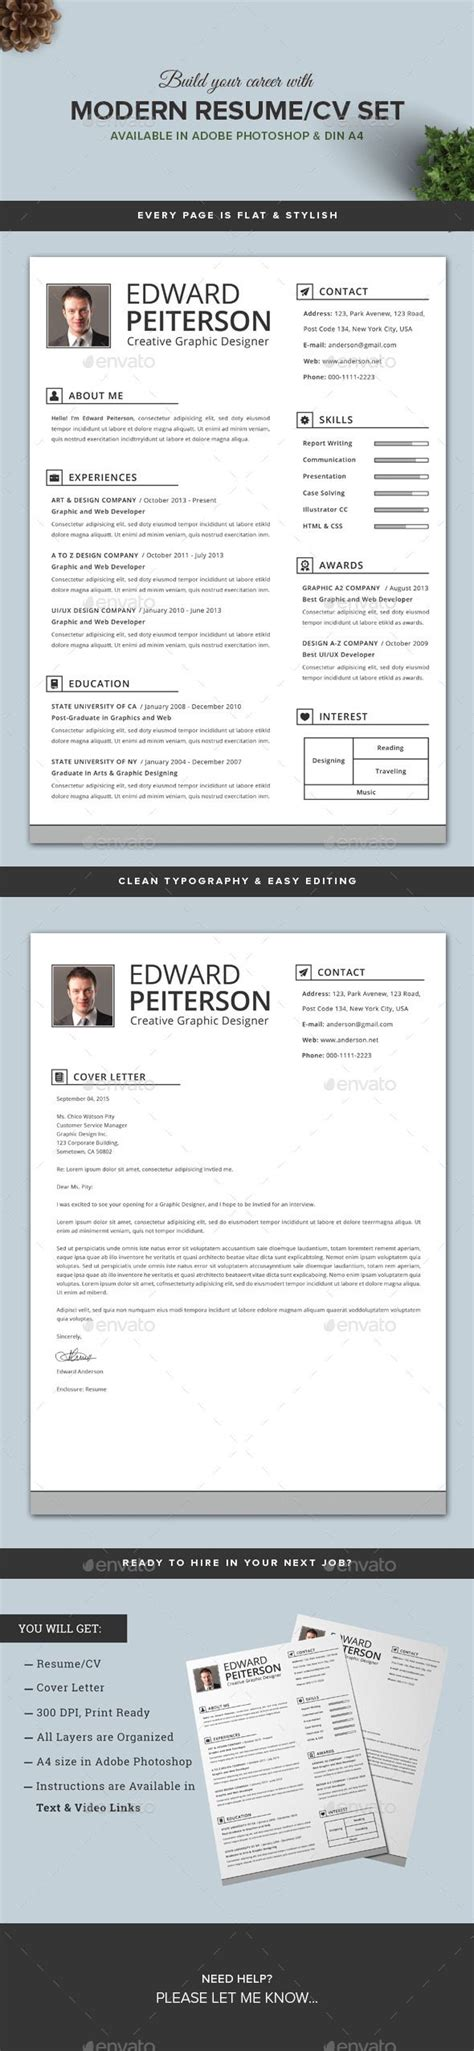 Resume Cv Graphicriver 1365 Best Images About Resume Design On Graphic Design Resume Free Resume And Cover